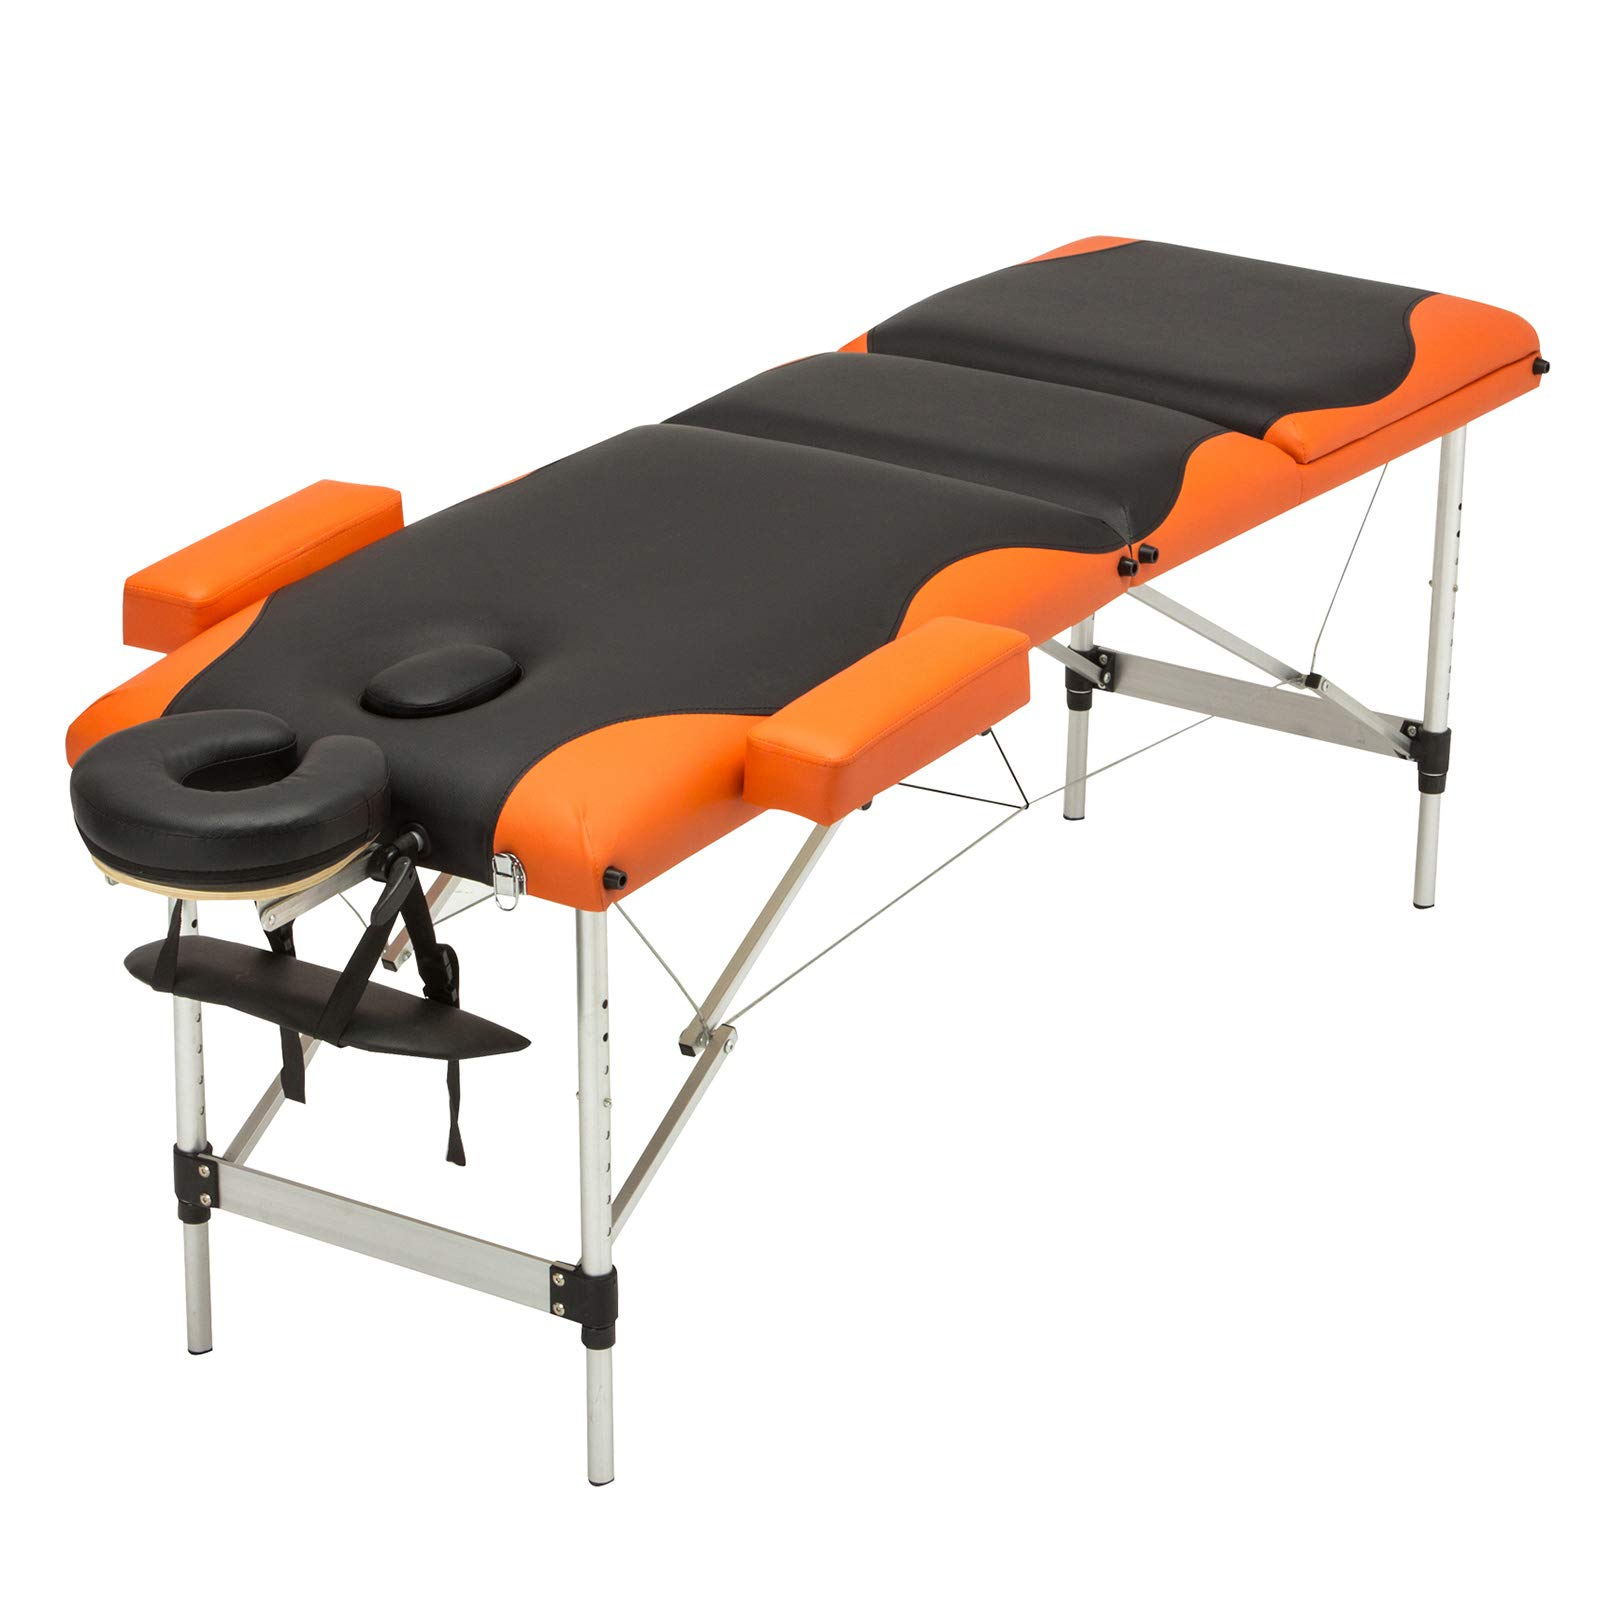 Uenjoy Folding Massage Table 84'' Professional Massage Bed Aluminum Frame With Accessories 3 Fold,Black & Orange Alu